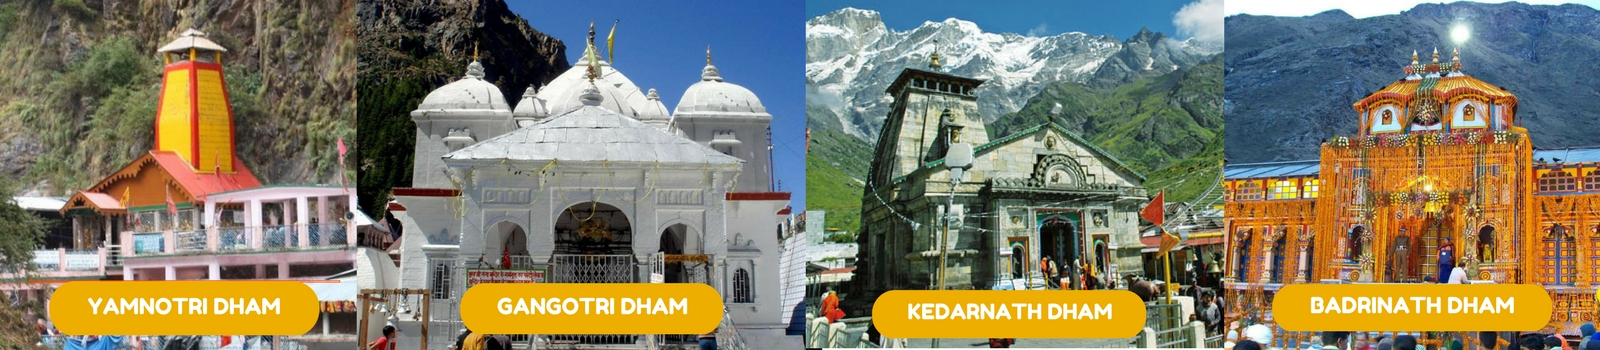 CHAR DHAM YATRA PACKAGE 2018